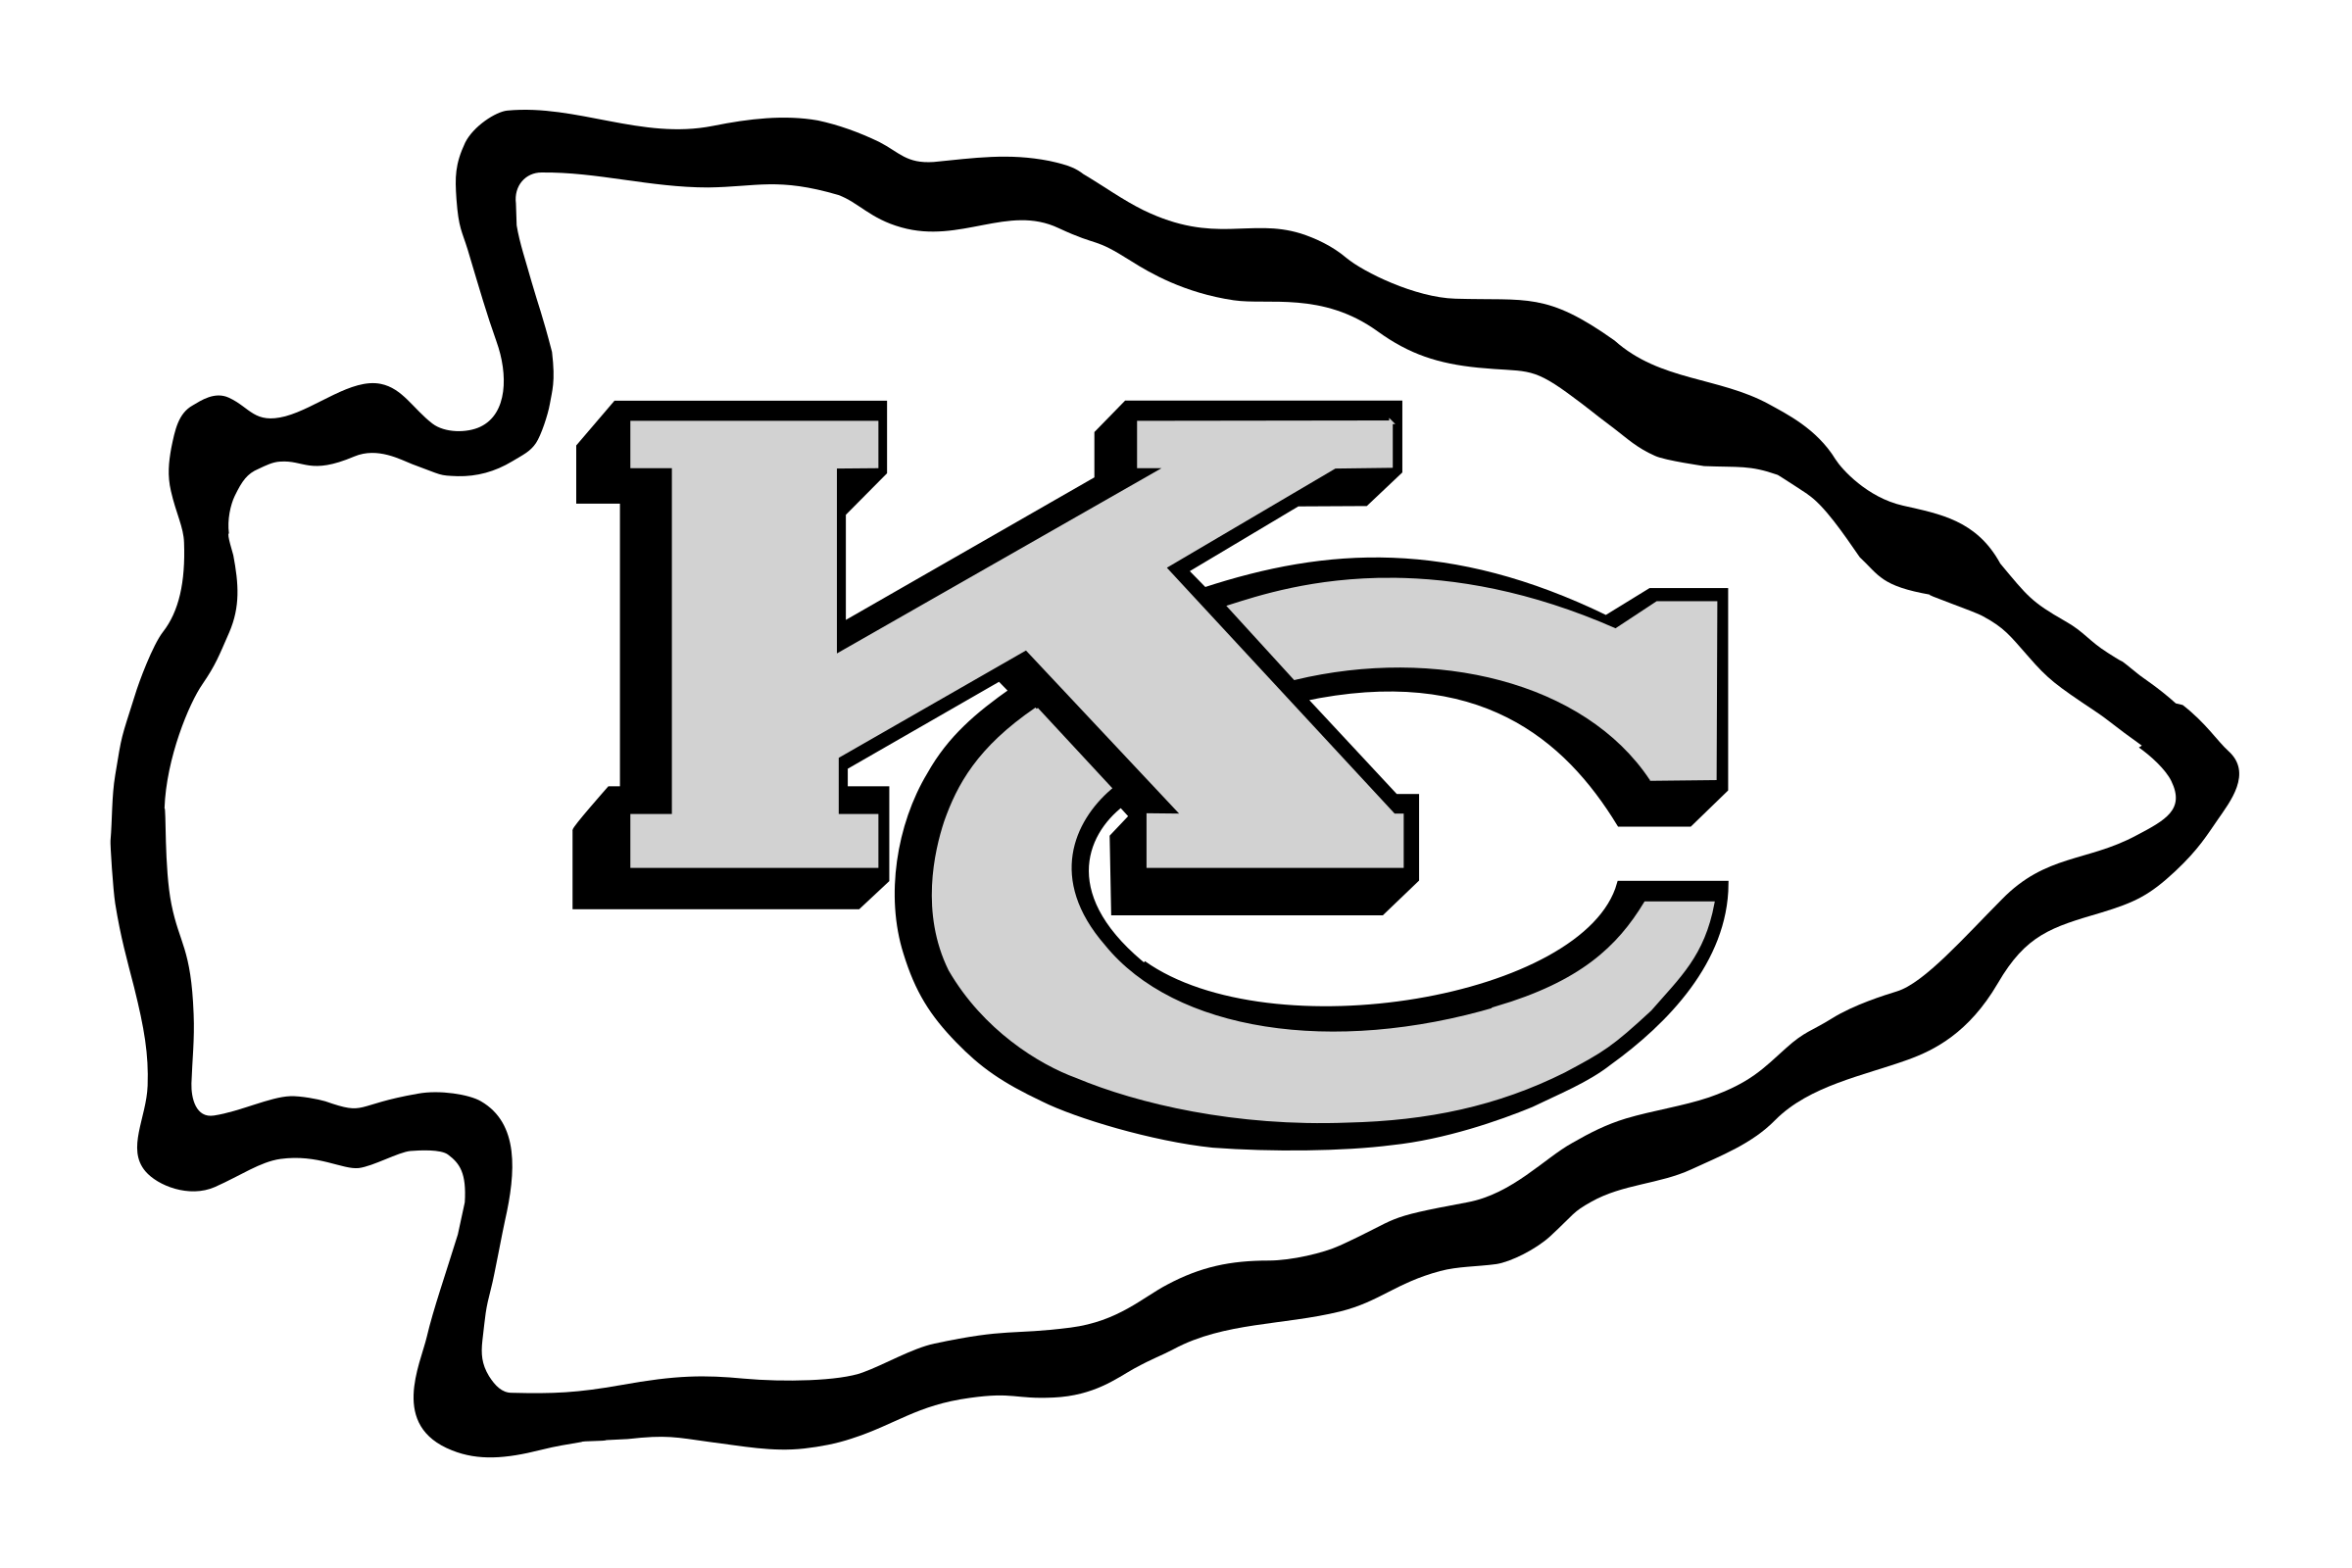 Kansas City Chiefs logo black and white - Kansas City Chiefs PNG